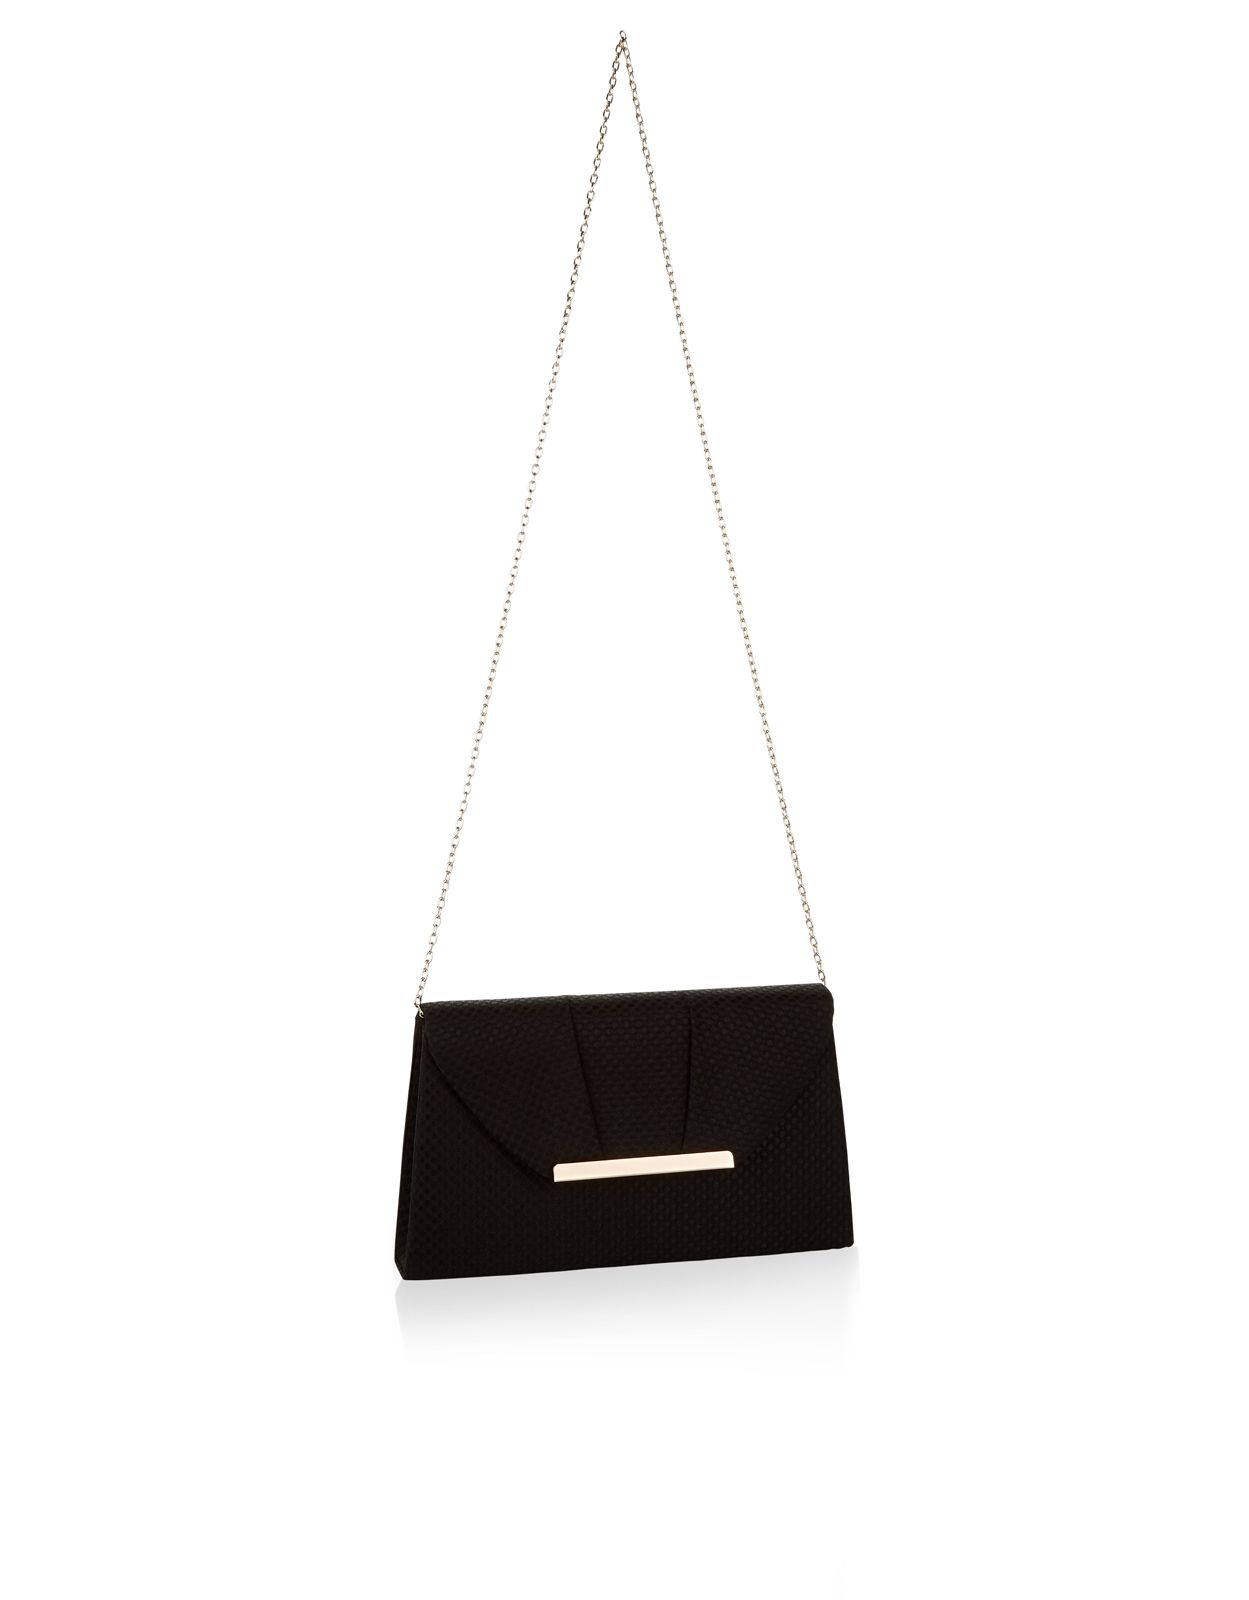 The Iris clutch has a vintage-inspired design featuring a woven outer with a pleated effect to envelop flap, finished with a gold-coloured metal bar, concealed popper fastening and a fine chain strap.